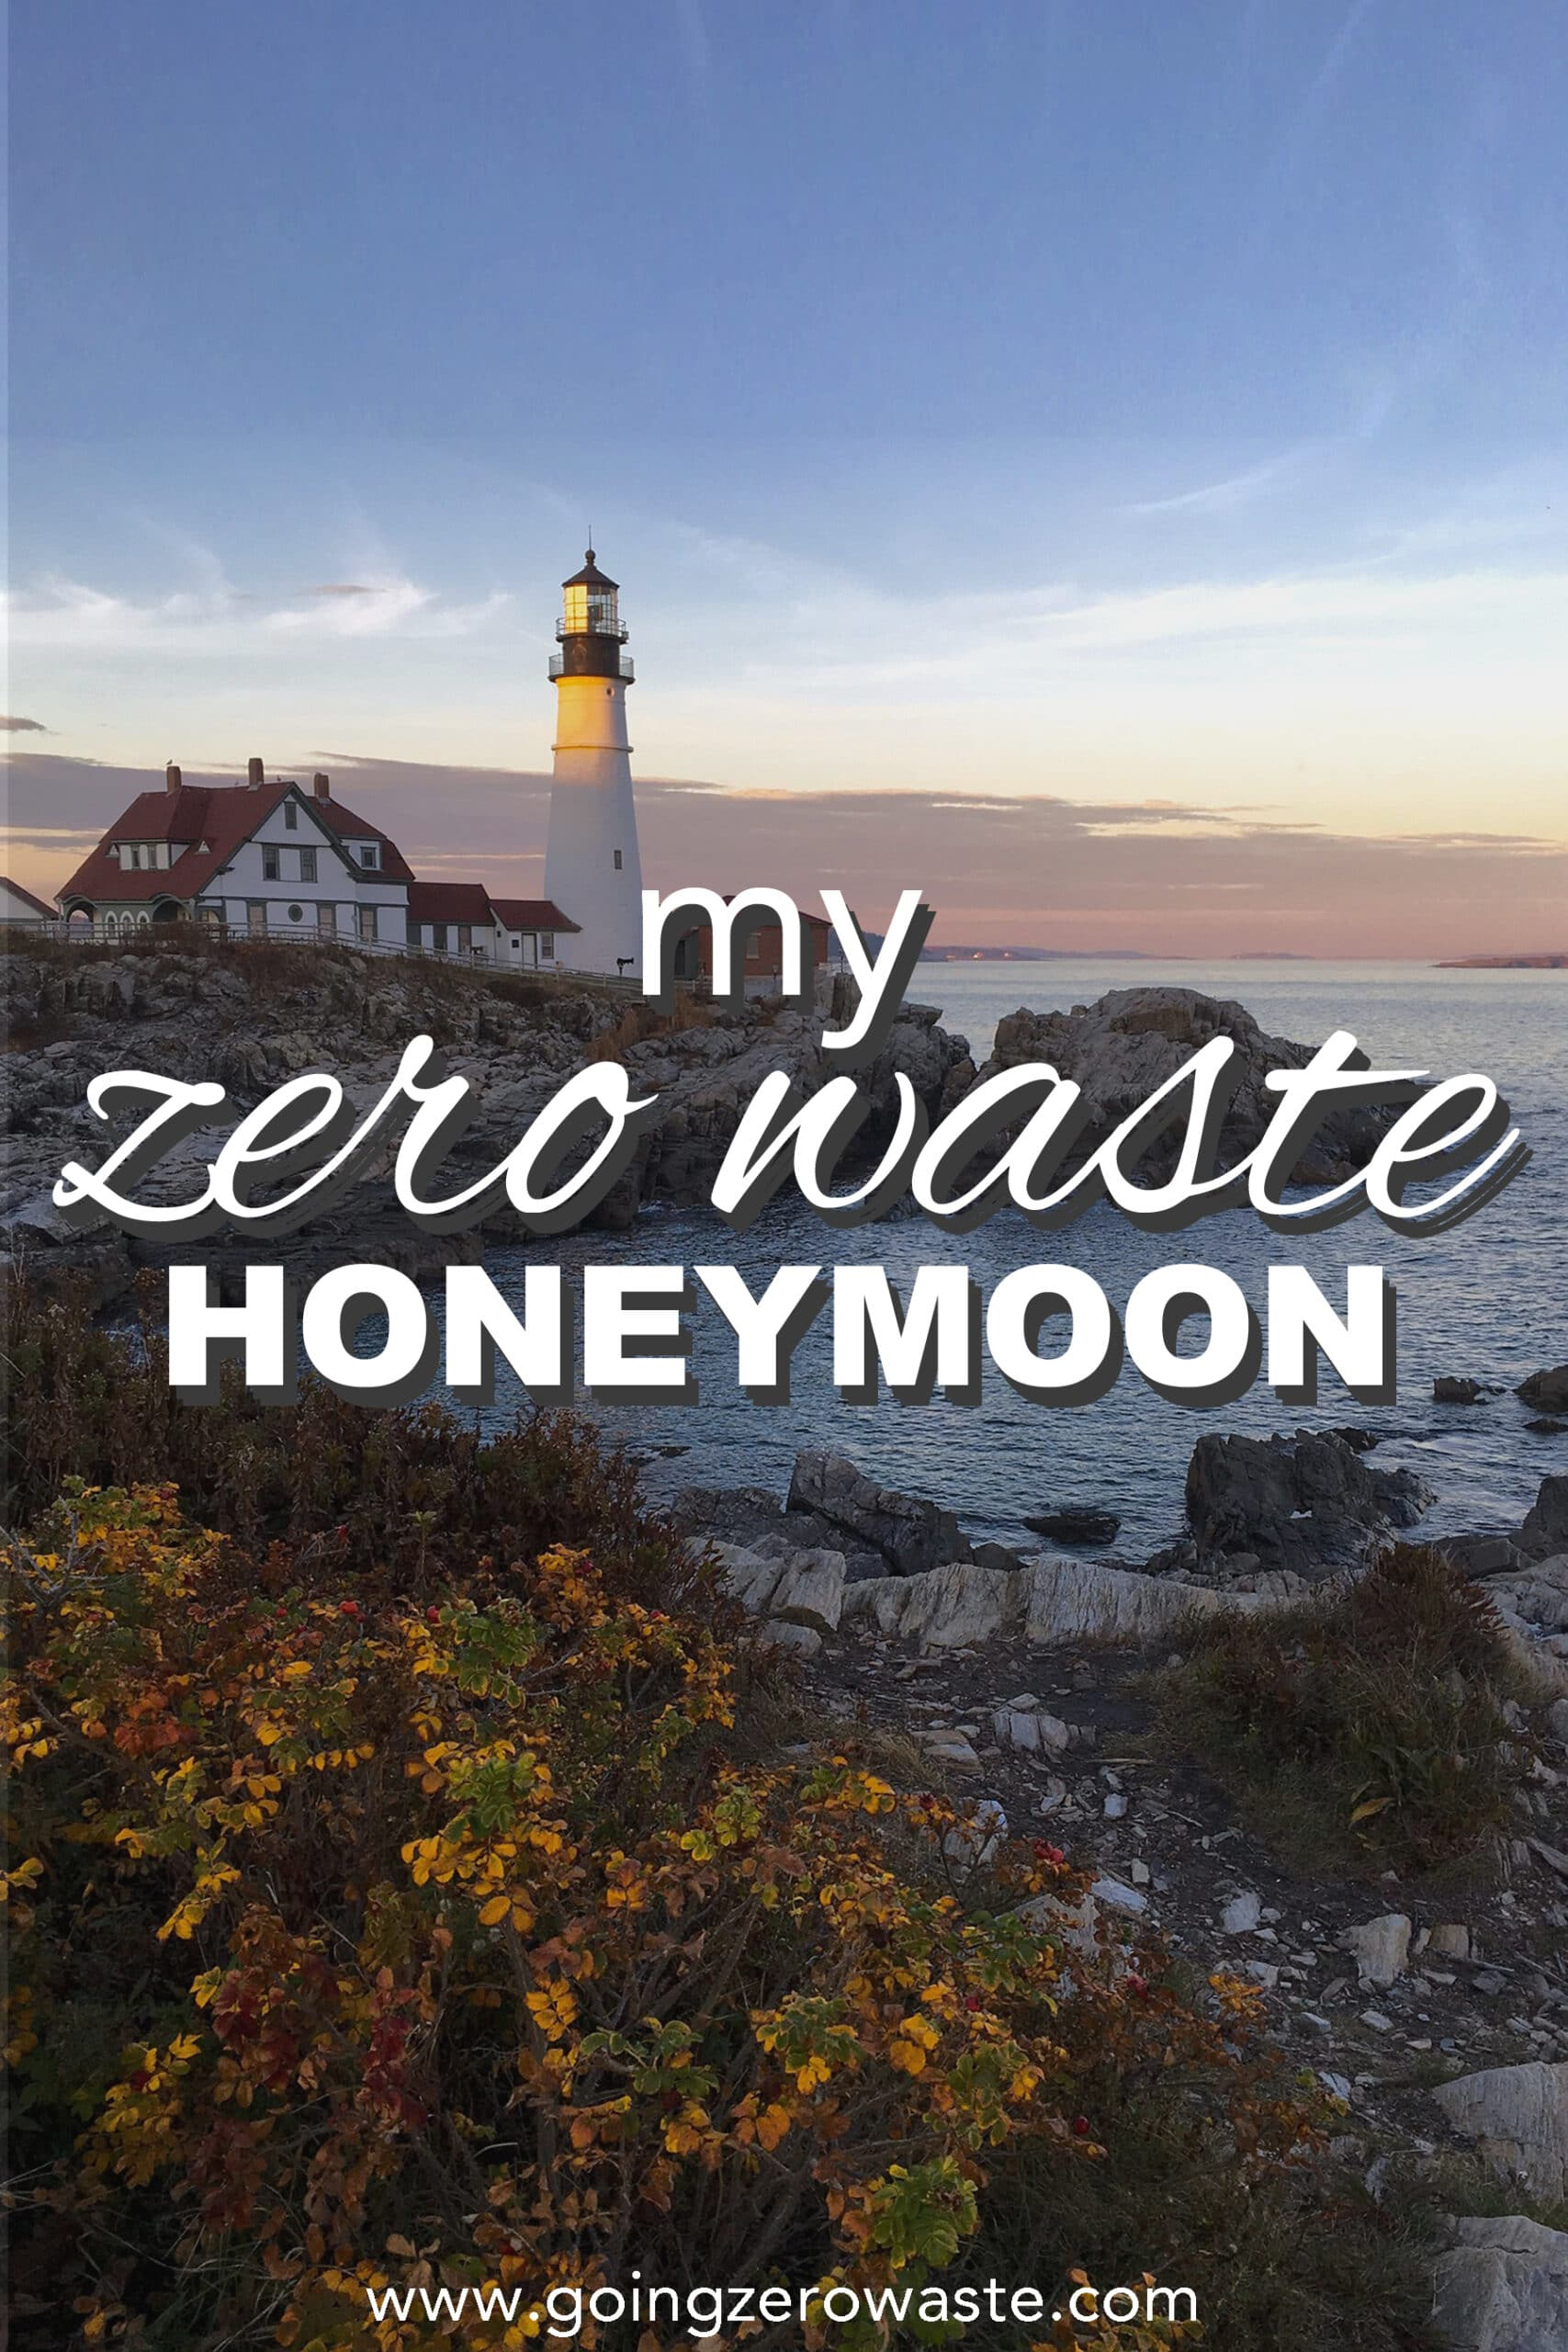 My Zero Waste Honeymoon